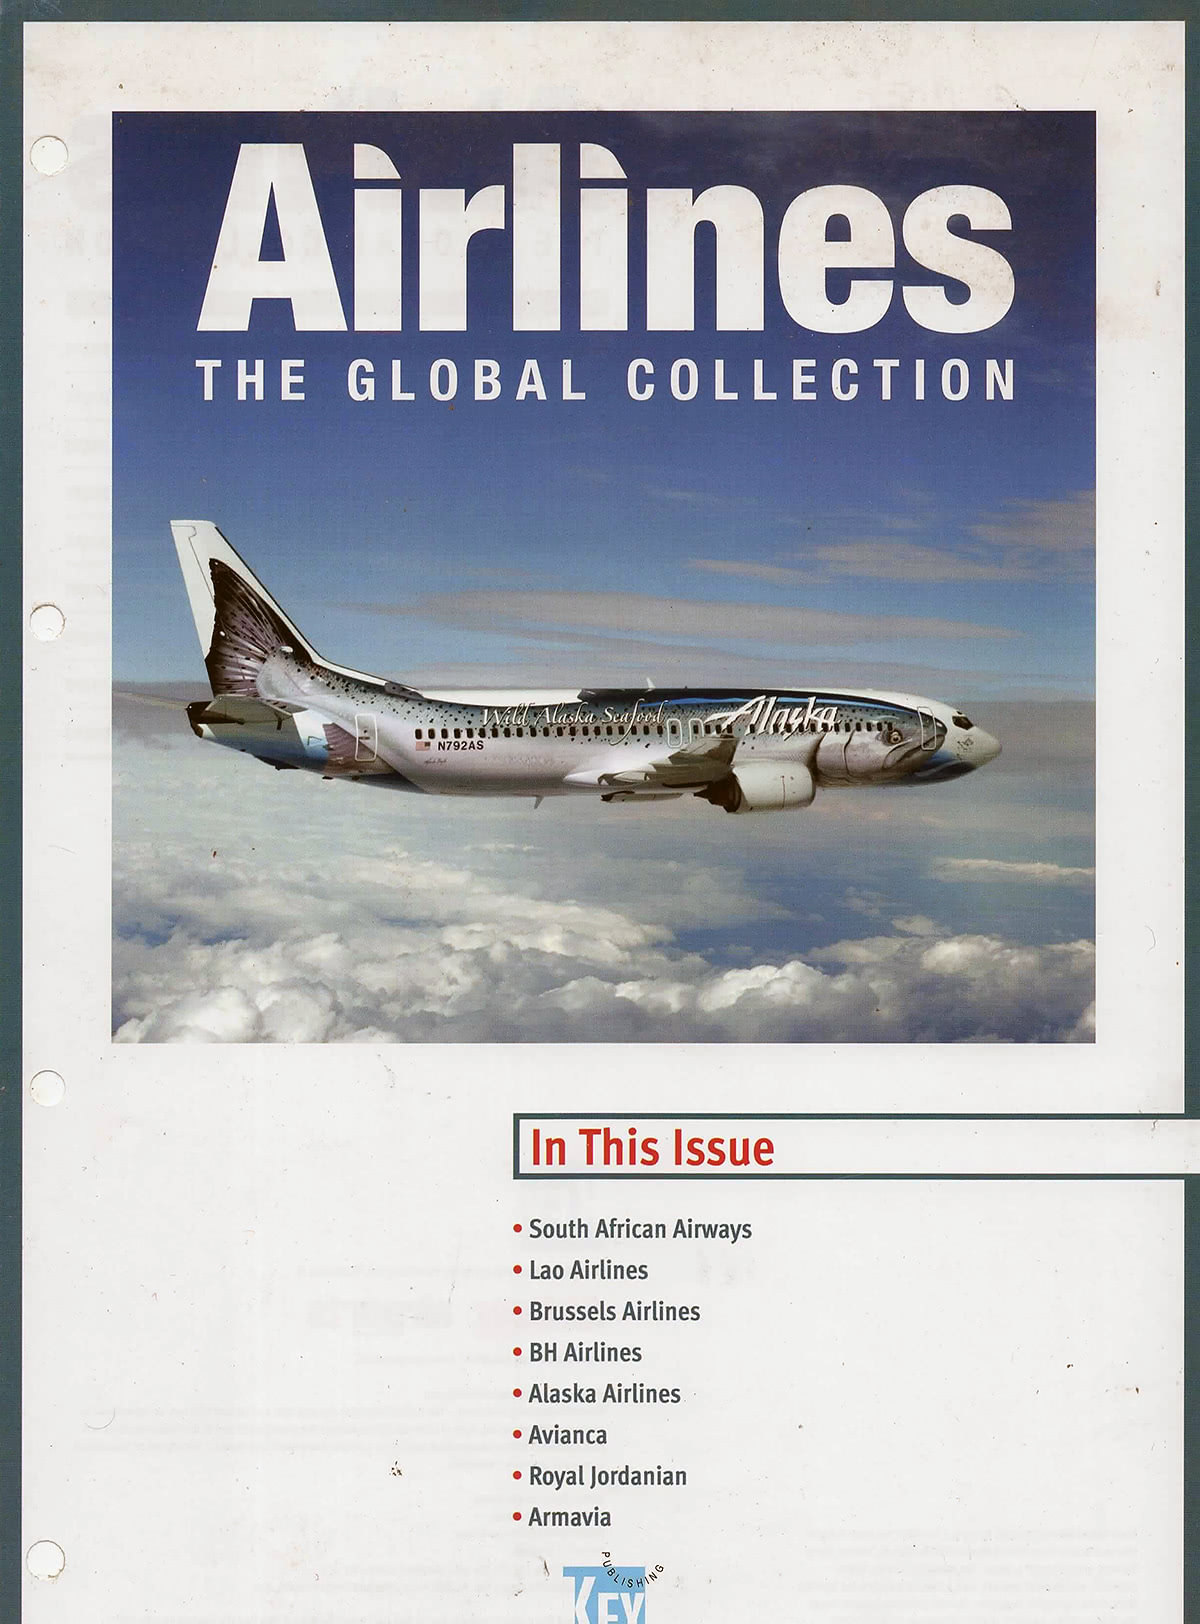 Airlines - The Global Collection